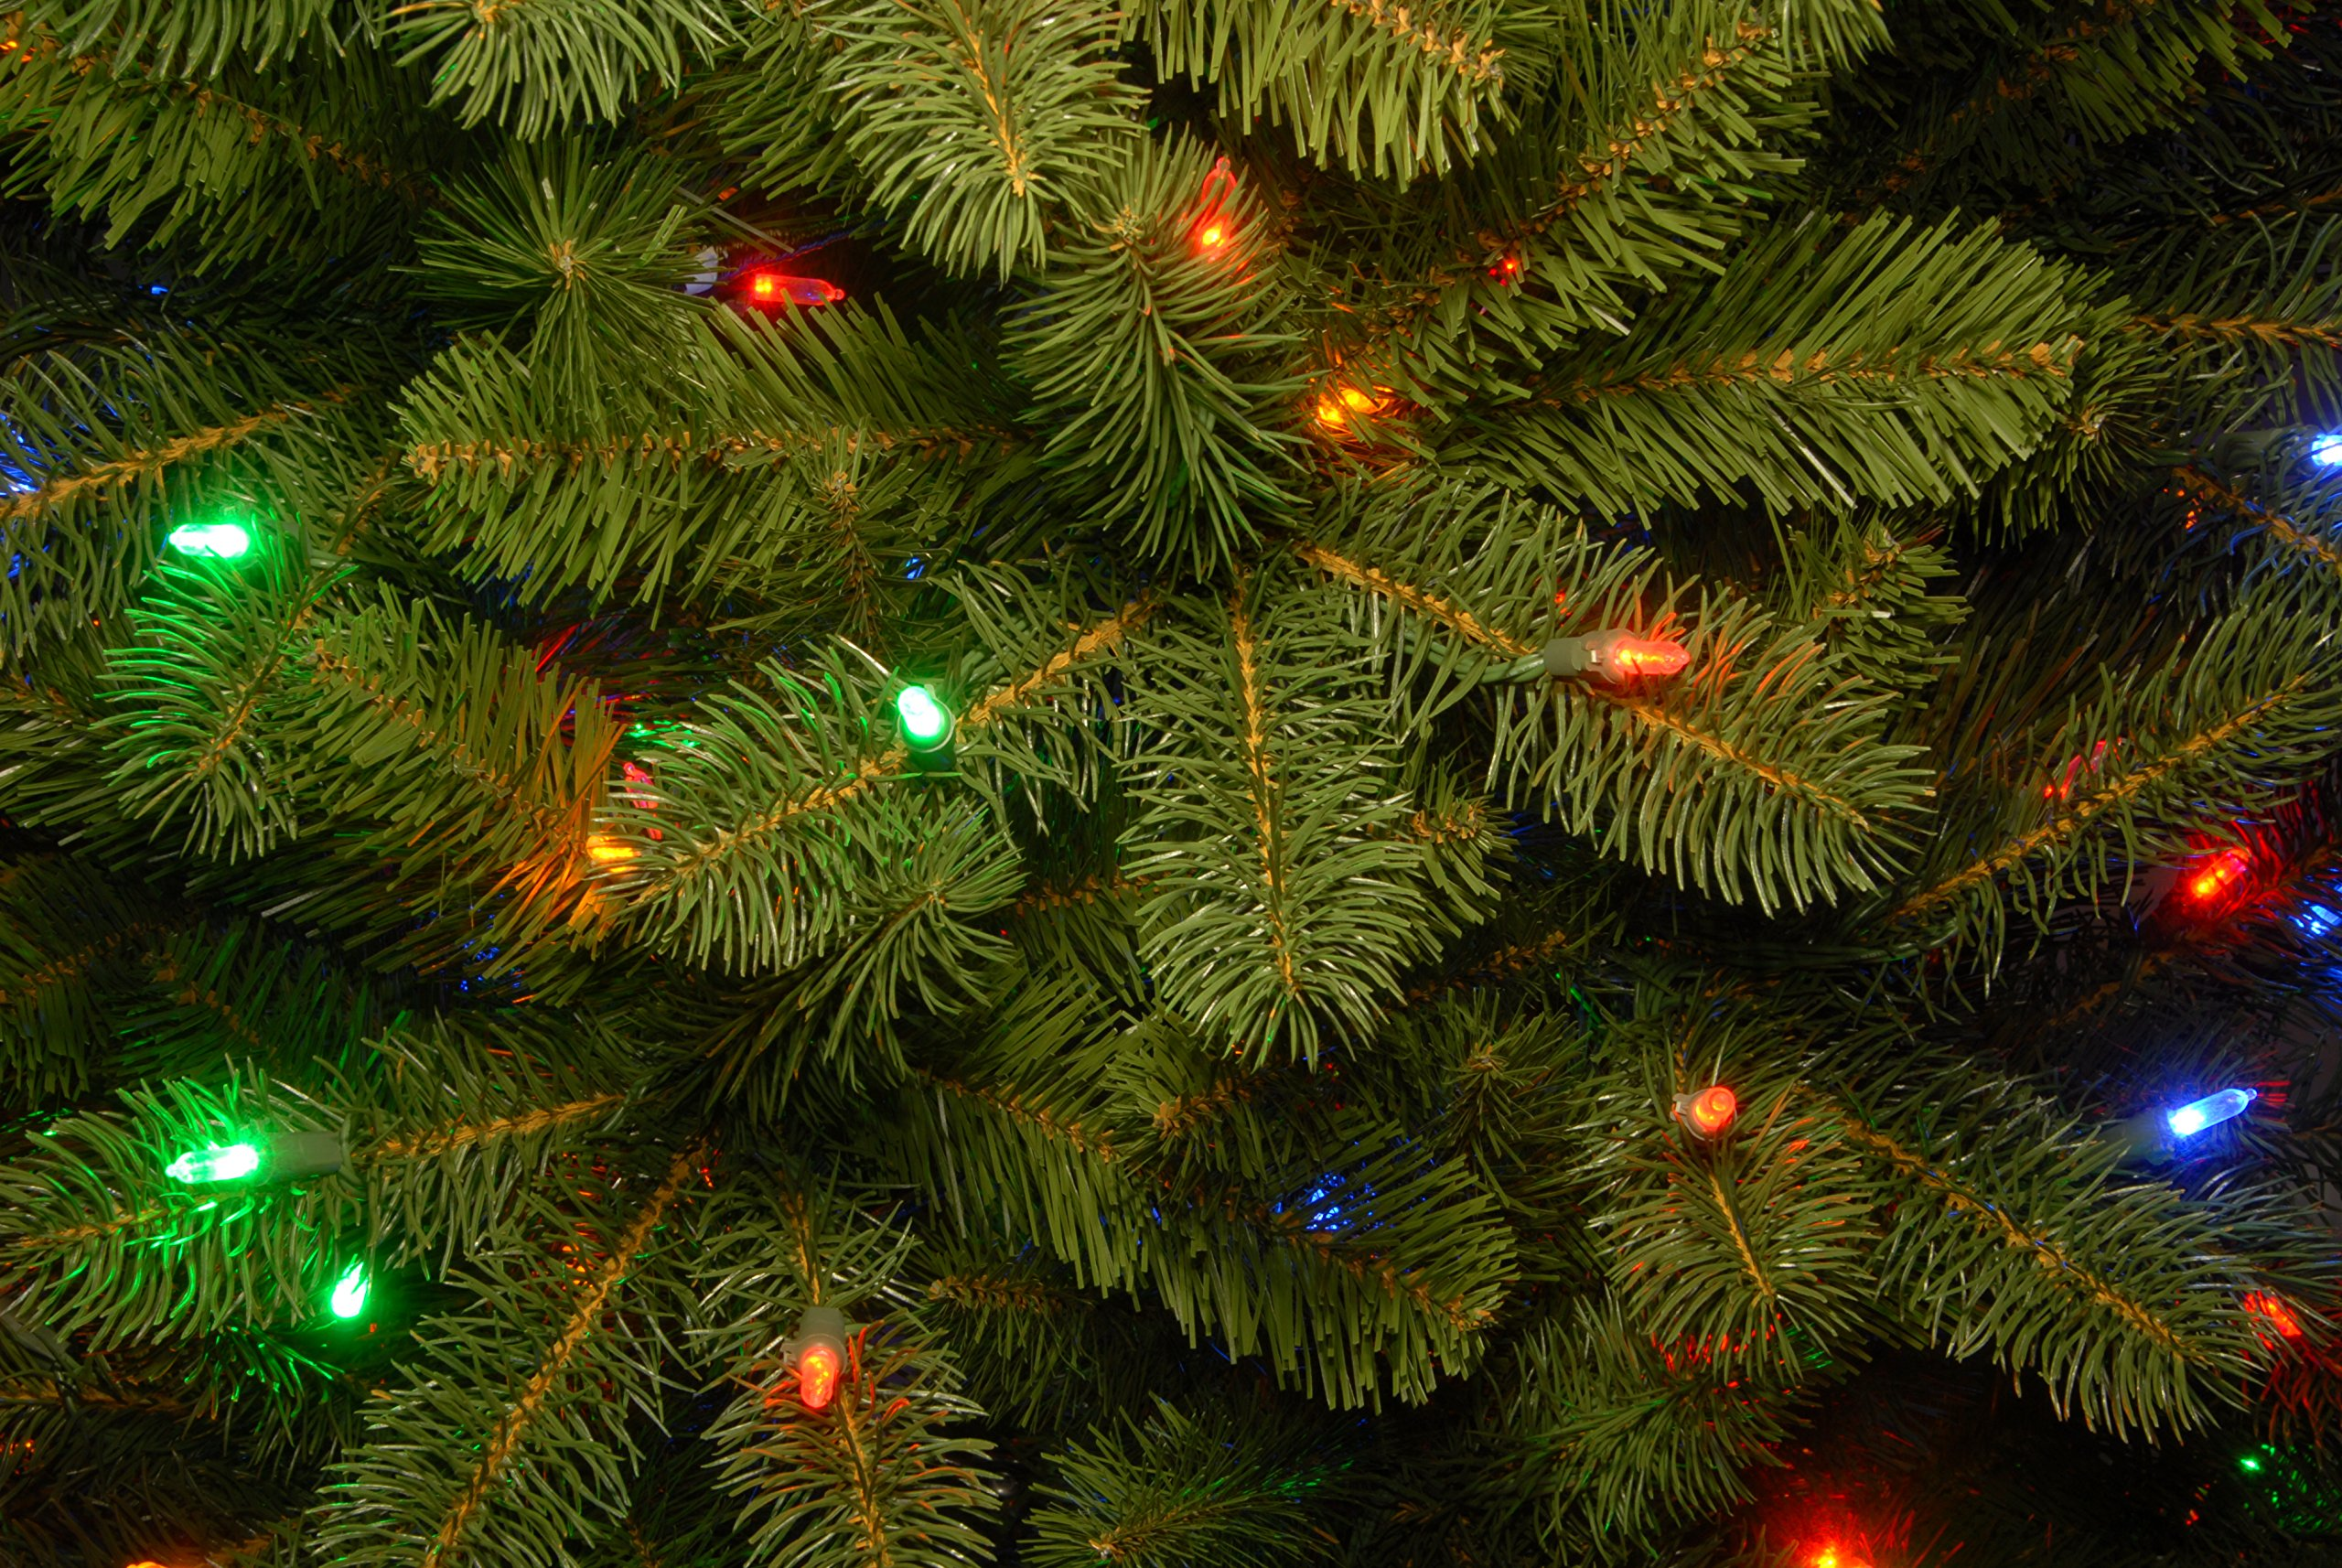 National-Tree-Downswept-Douglas-Fir-Tree-with-Multicolor-Lights